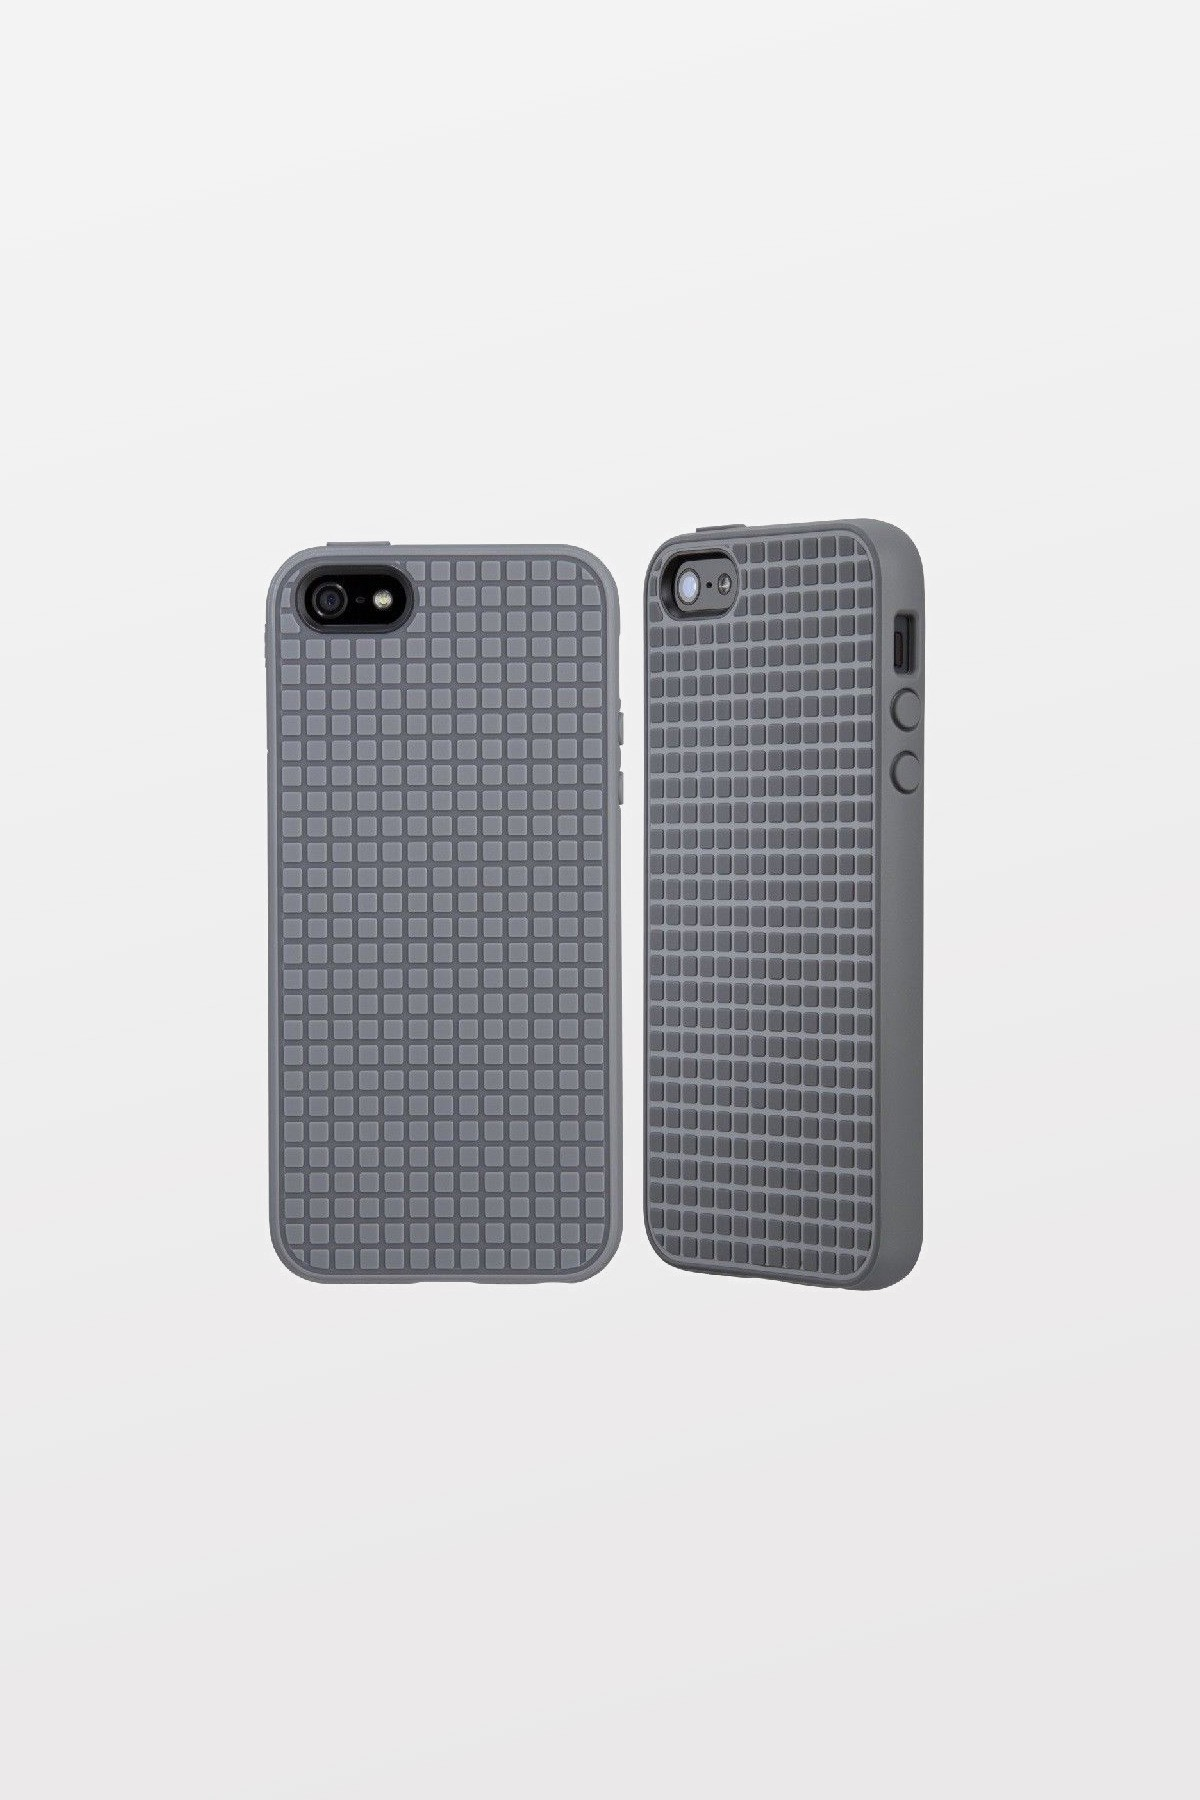 Speck PixelSkin HD for iPhone 5/5s - Graphite